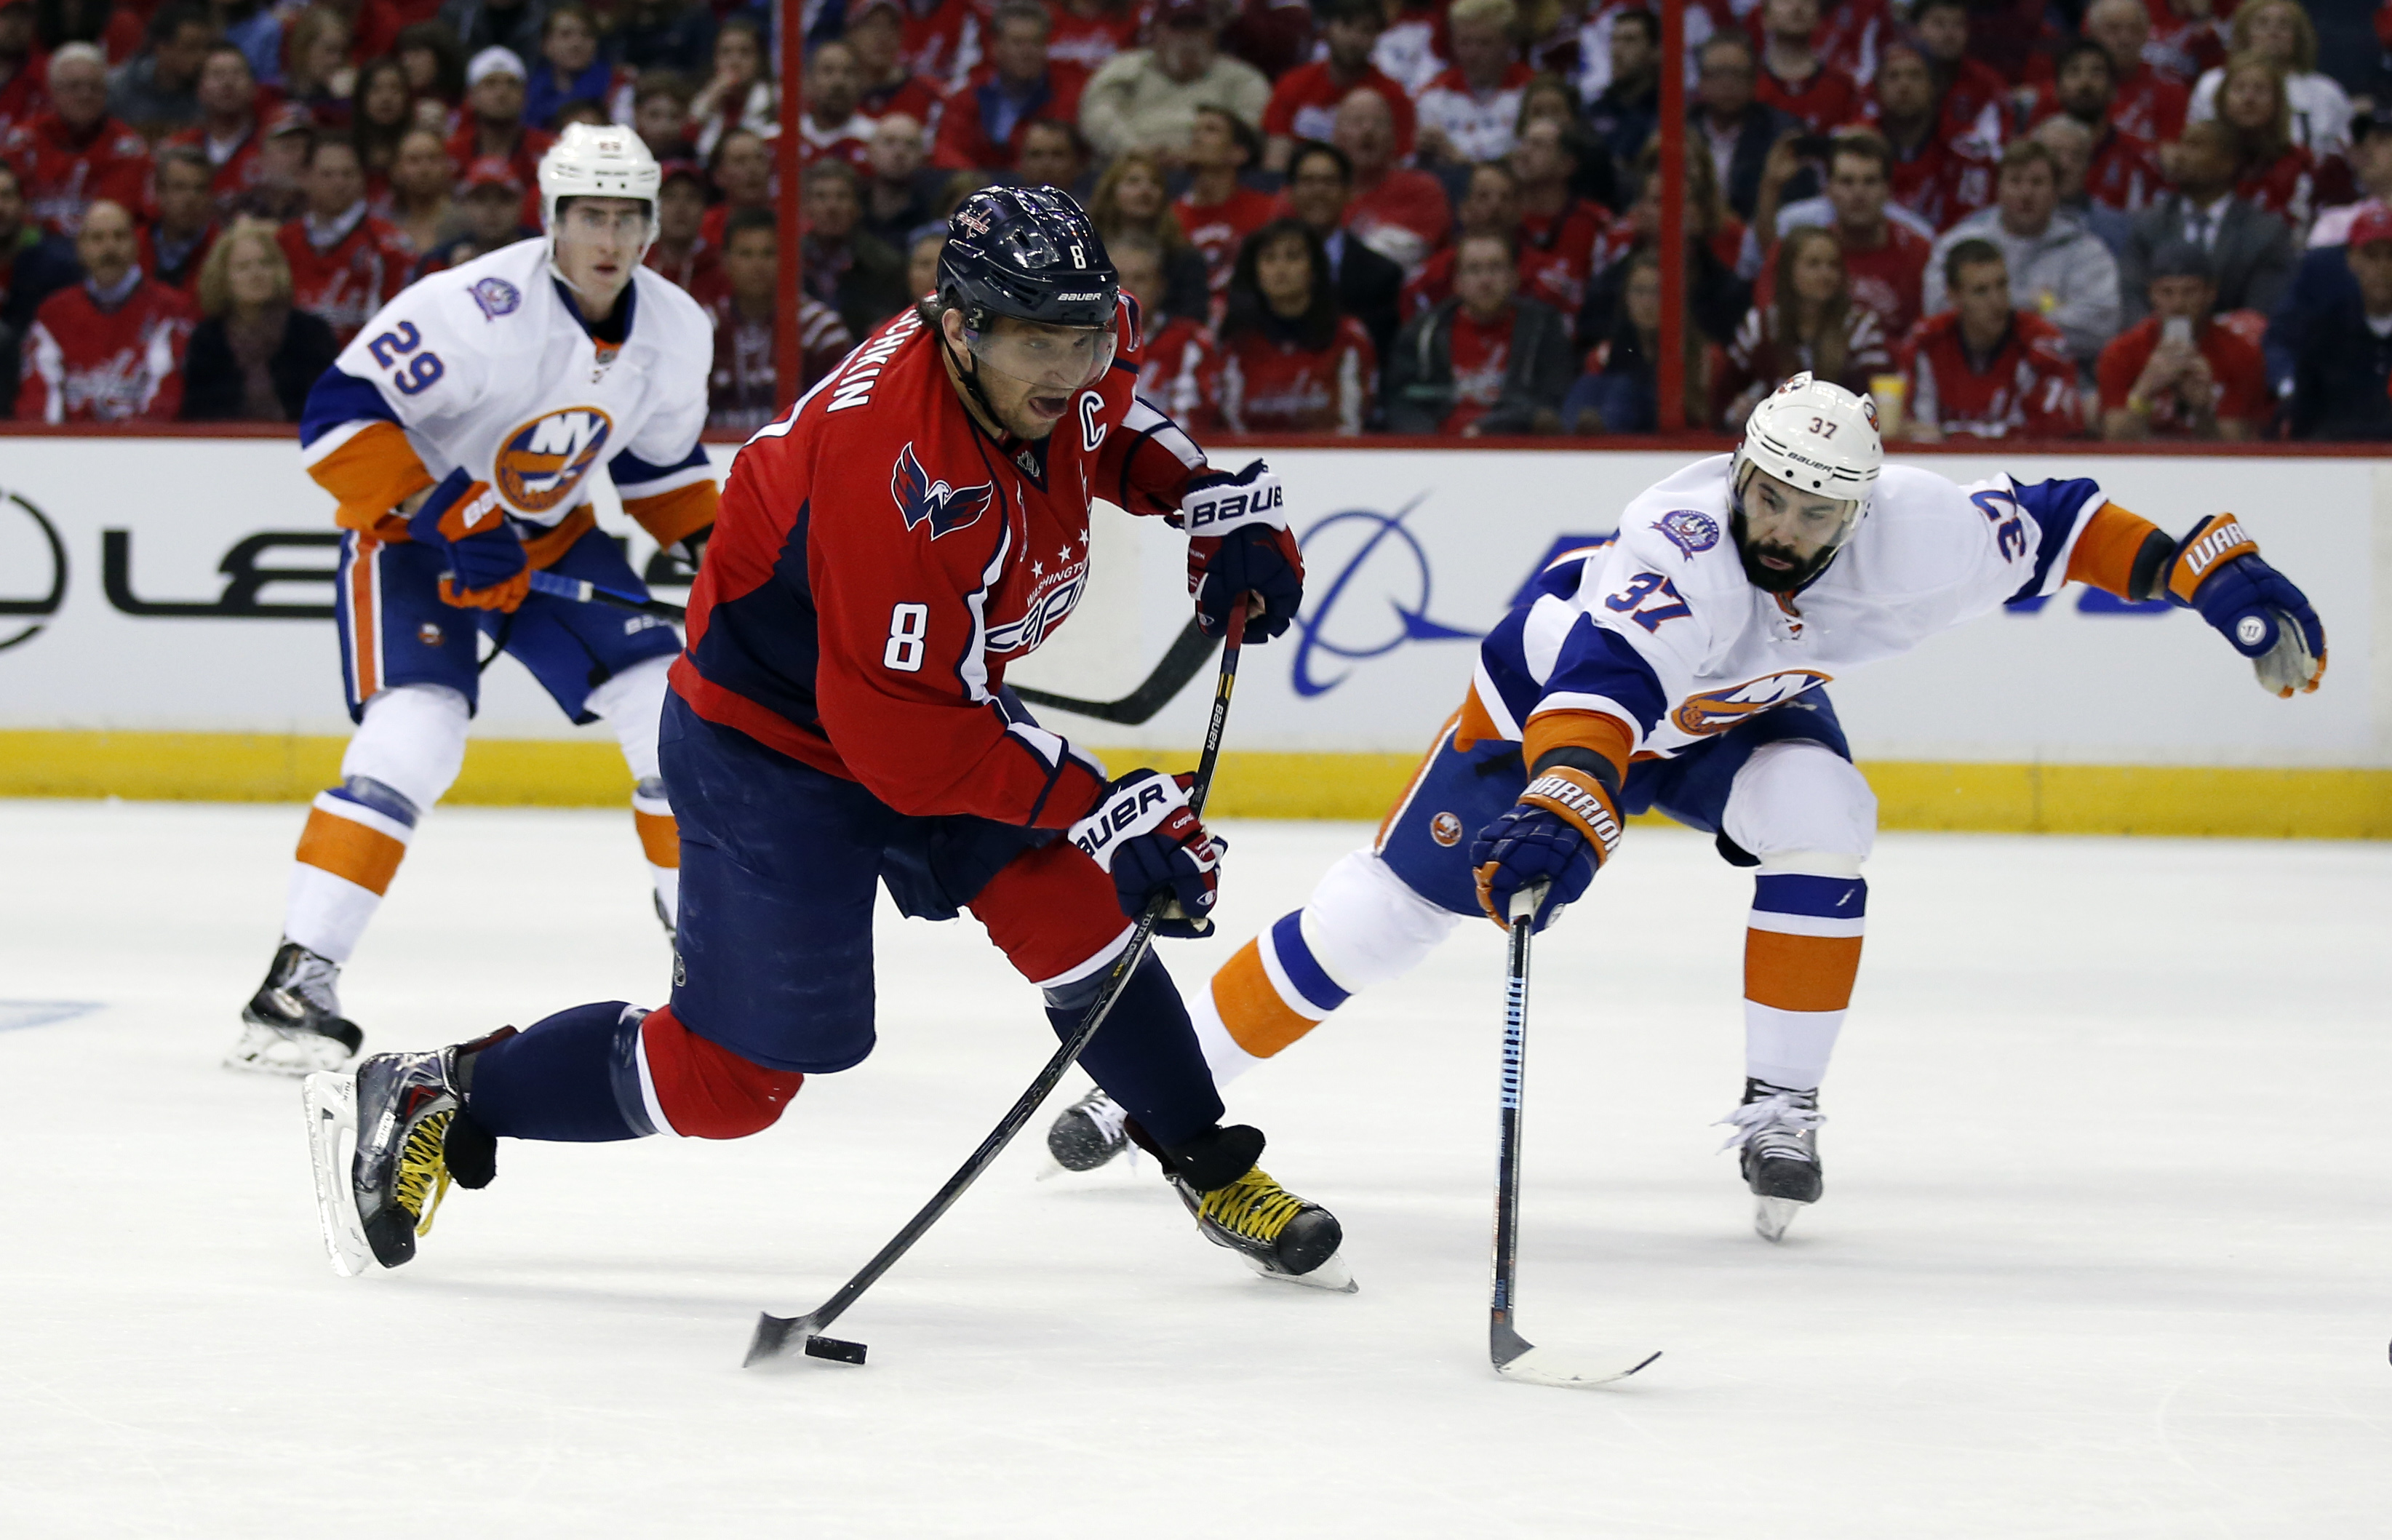 Washington Capitals left wing Alex Ovechkin (8), from Russia, shoots past New York Islanders defenseman Brian Strait (37) during the first period of Game 1 of a first-round NHL hockey Stanley Cup playoffs series, Wednesday, April 15, 2015, in Washington.